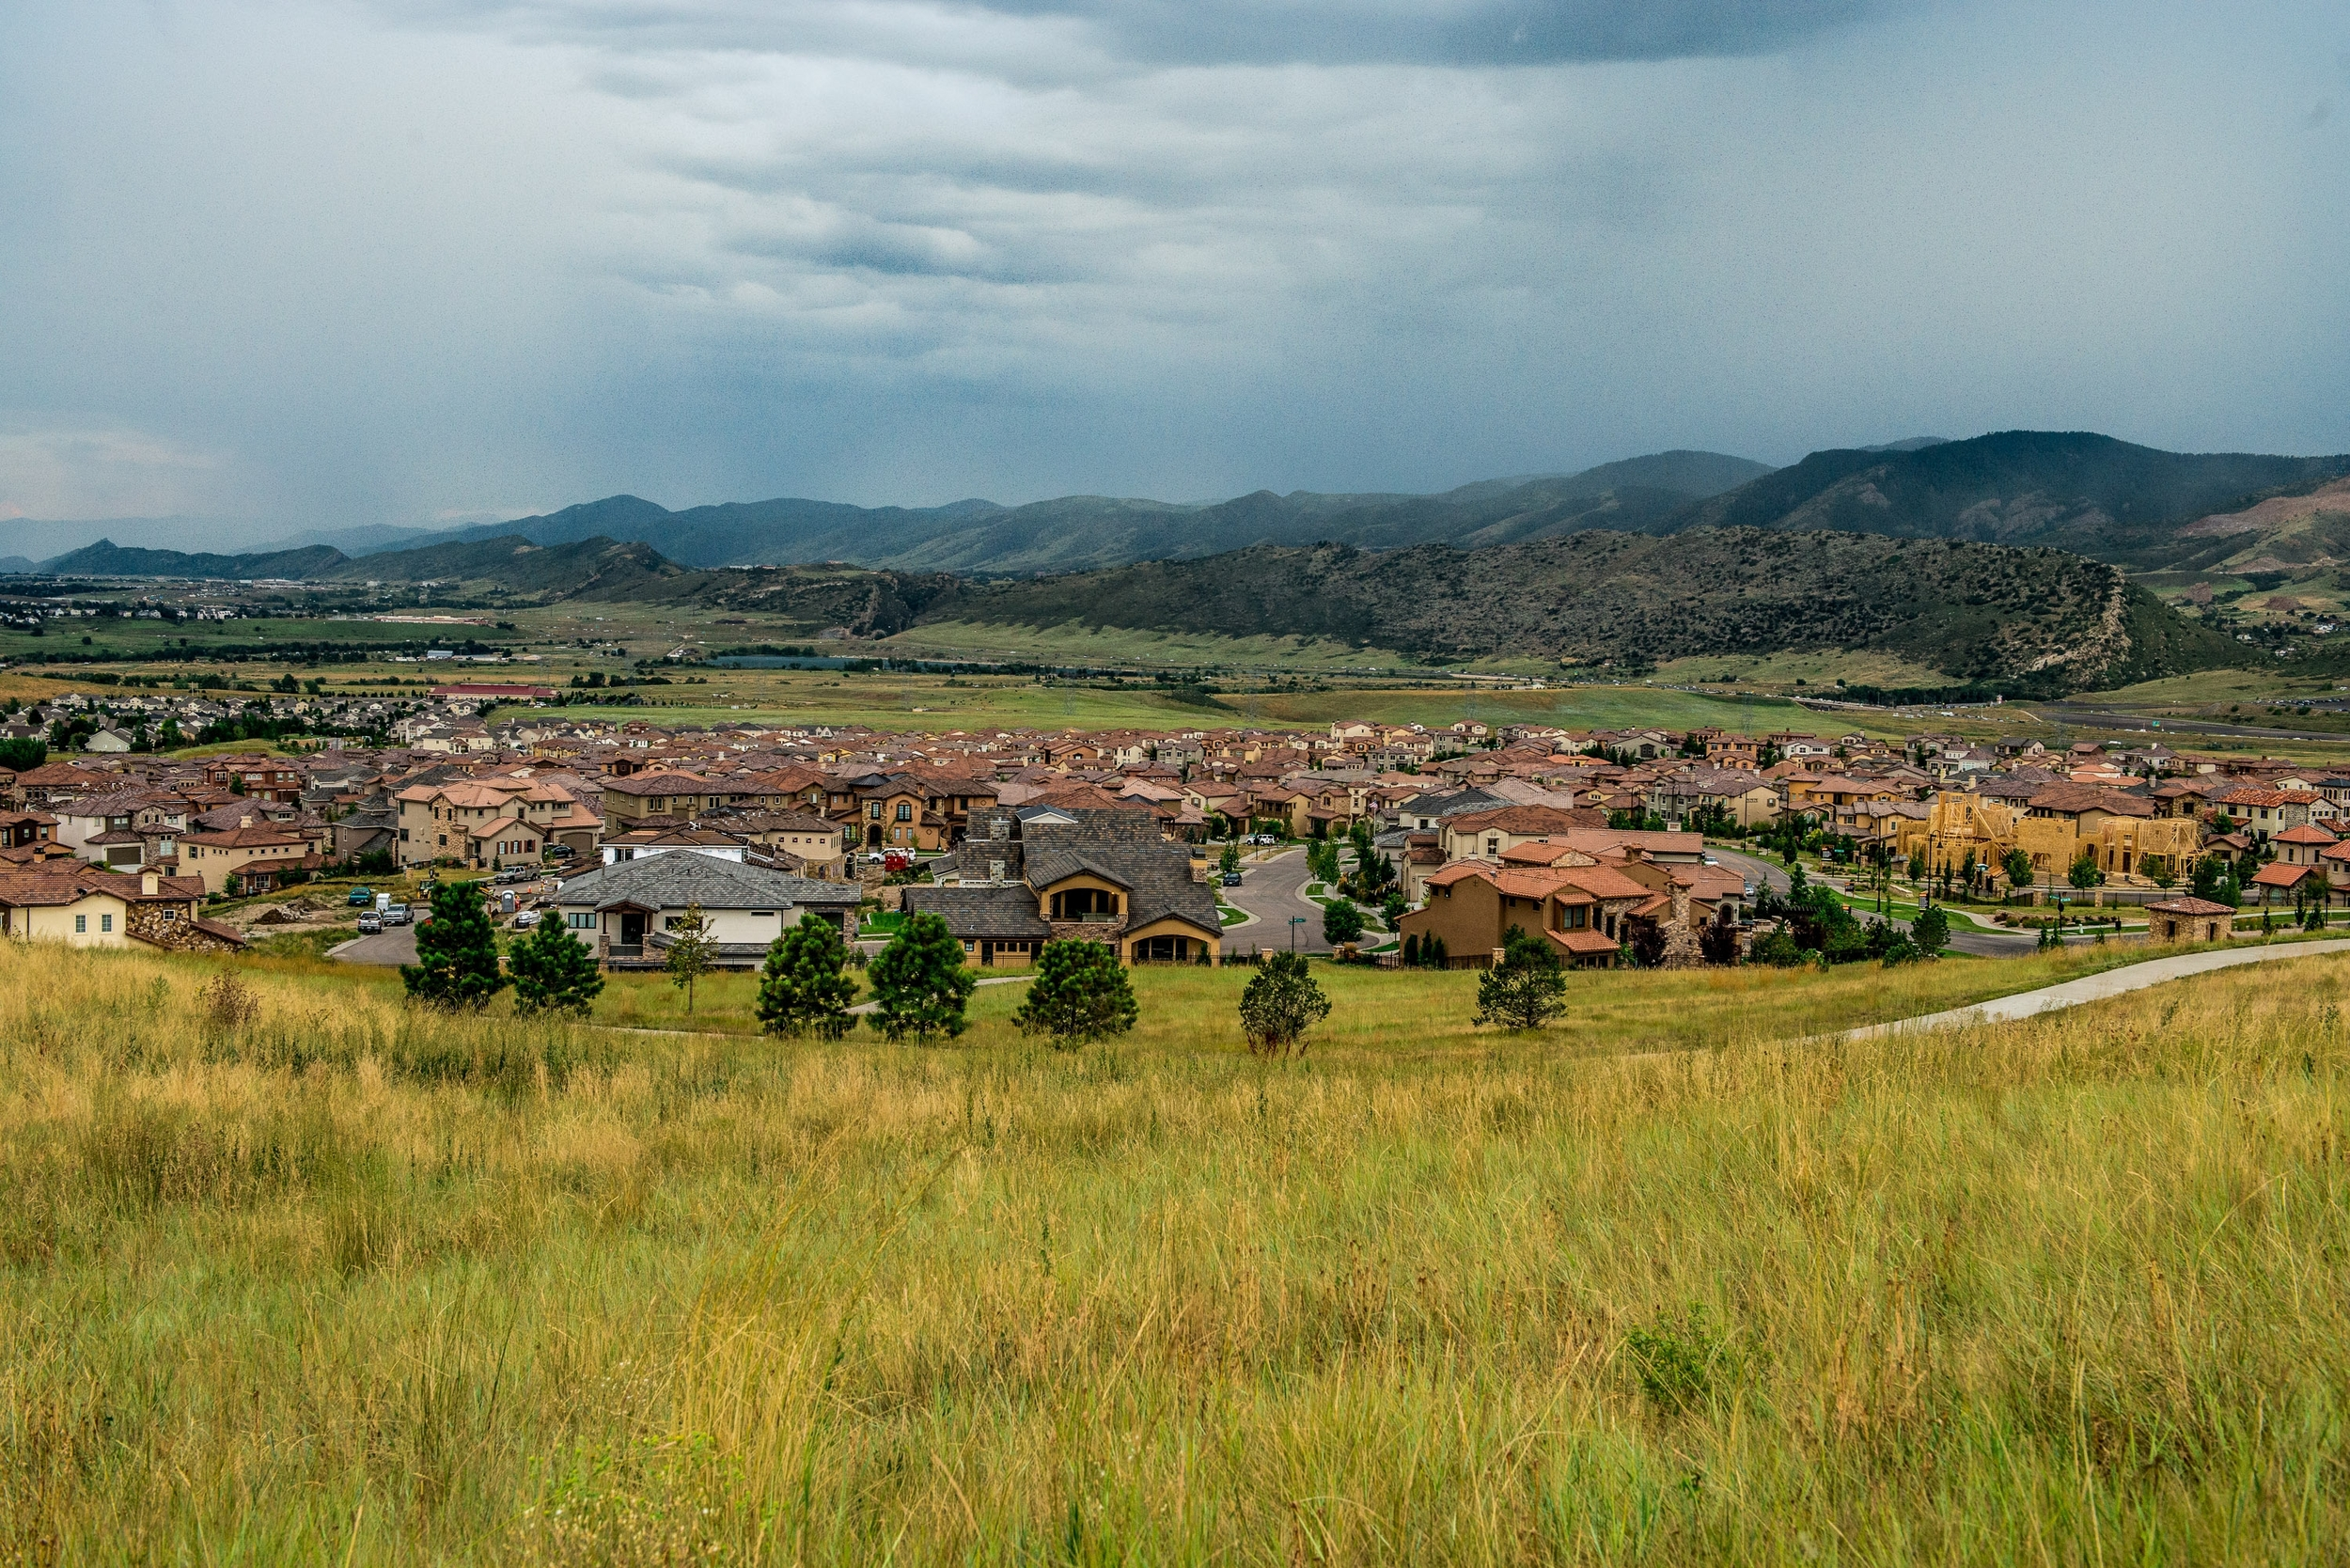 Solterra neighborhood in Colorado's beautiful foothills